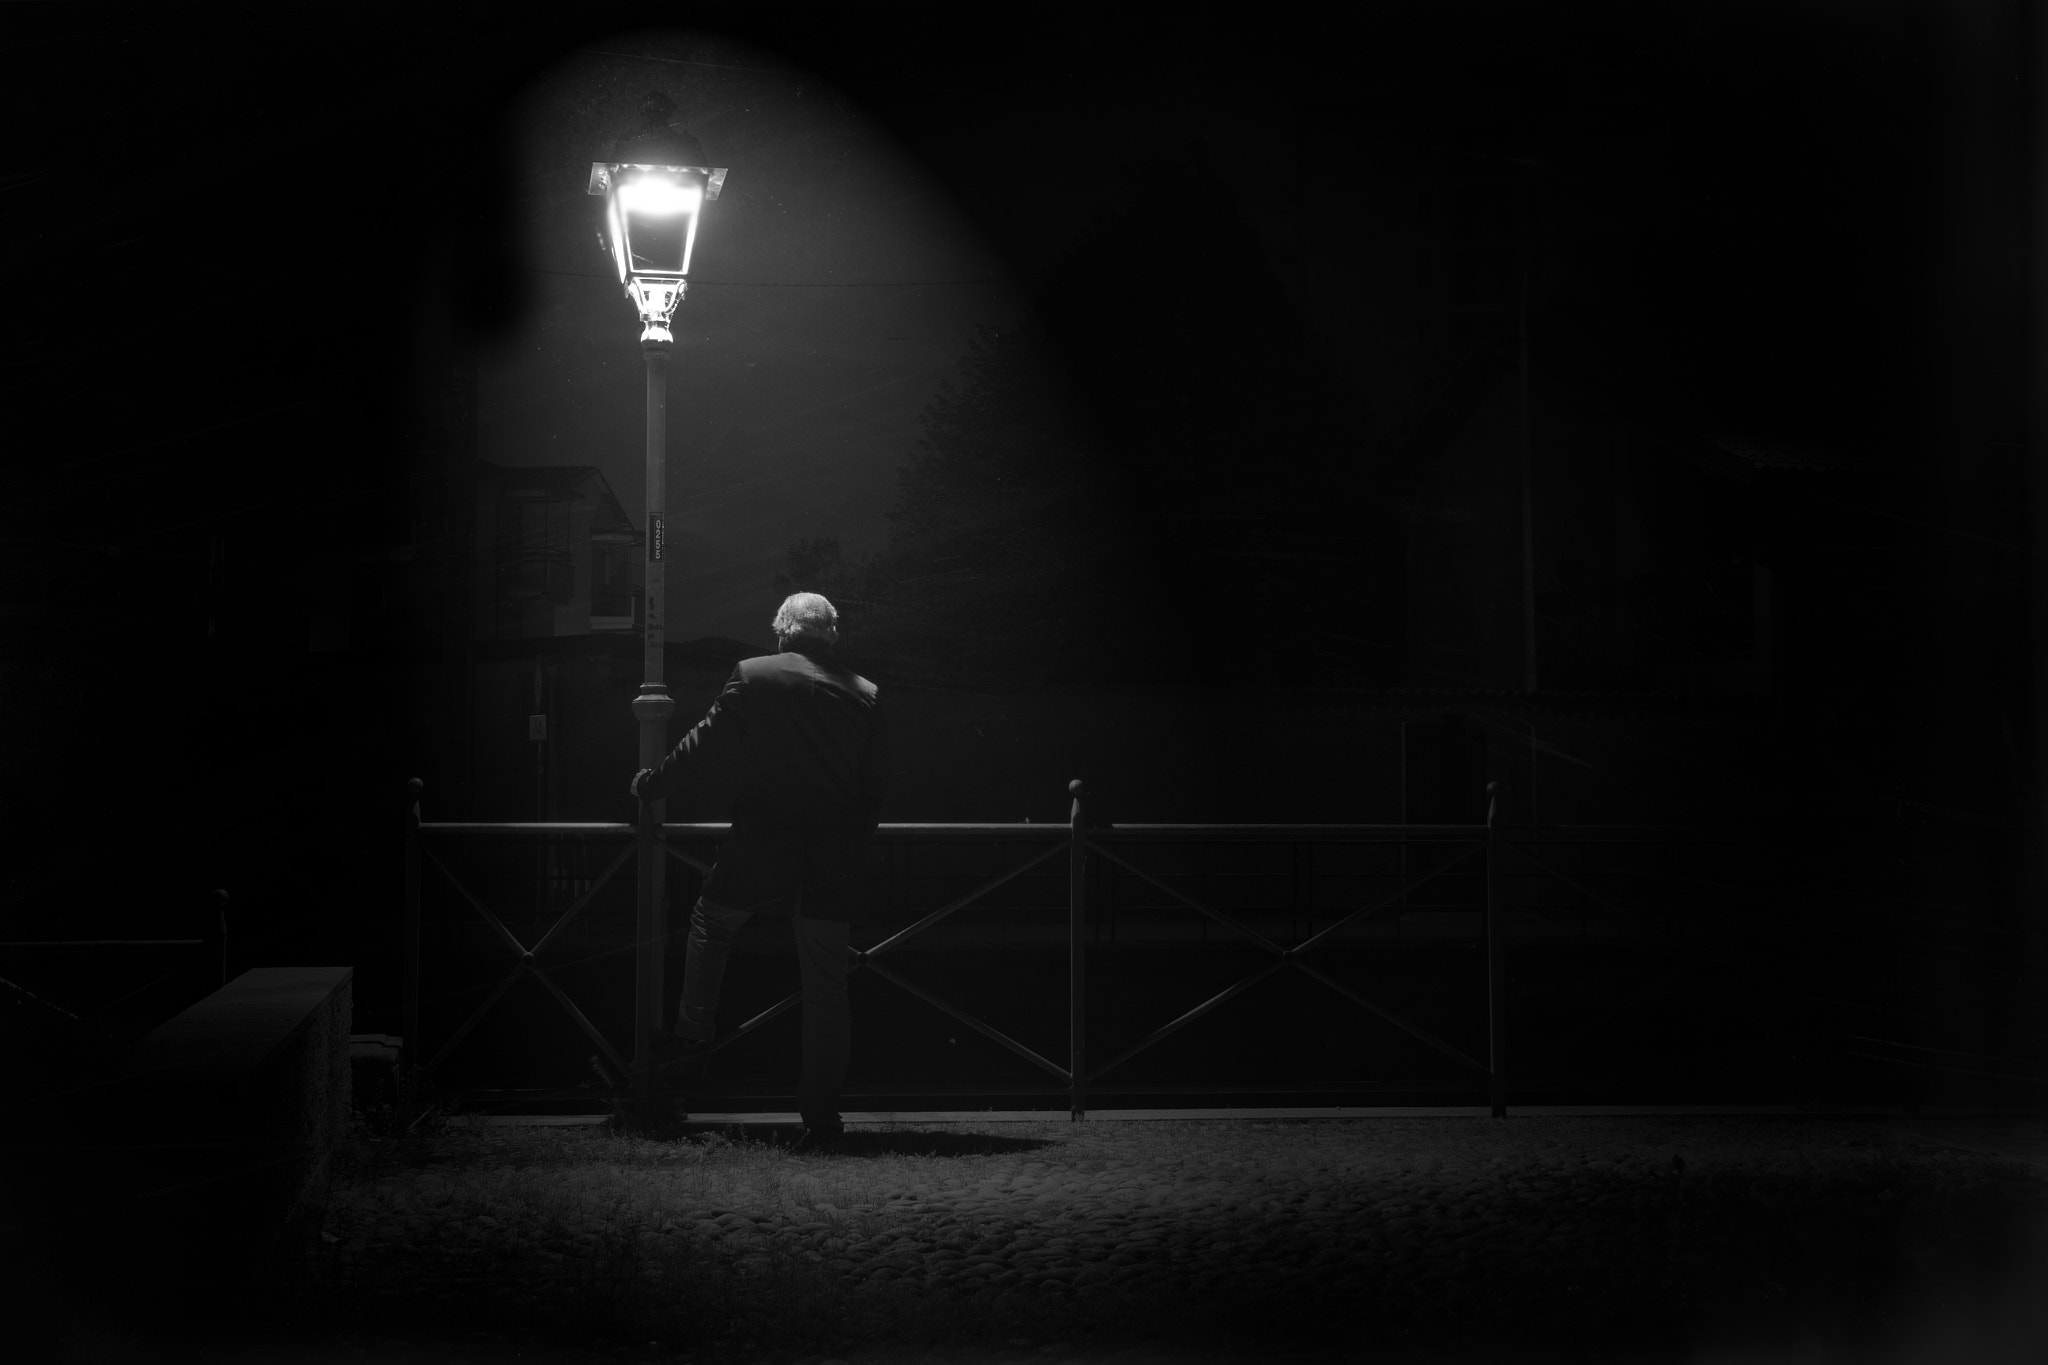 Photograph B&W Stuffs - Looking At The Darkness by Simone Fiorino on 500px